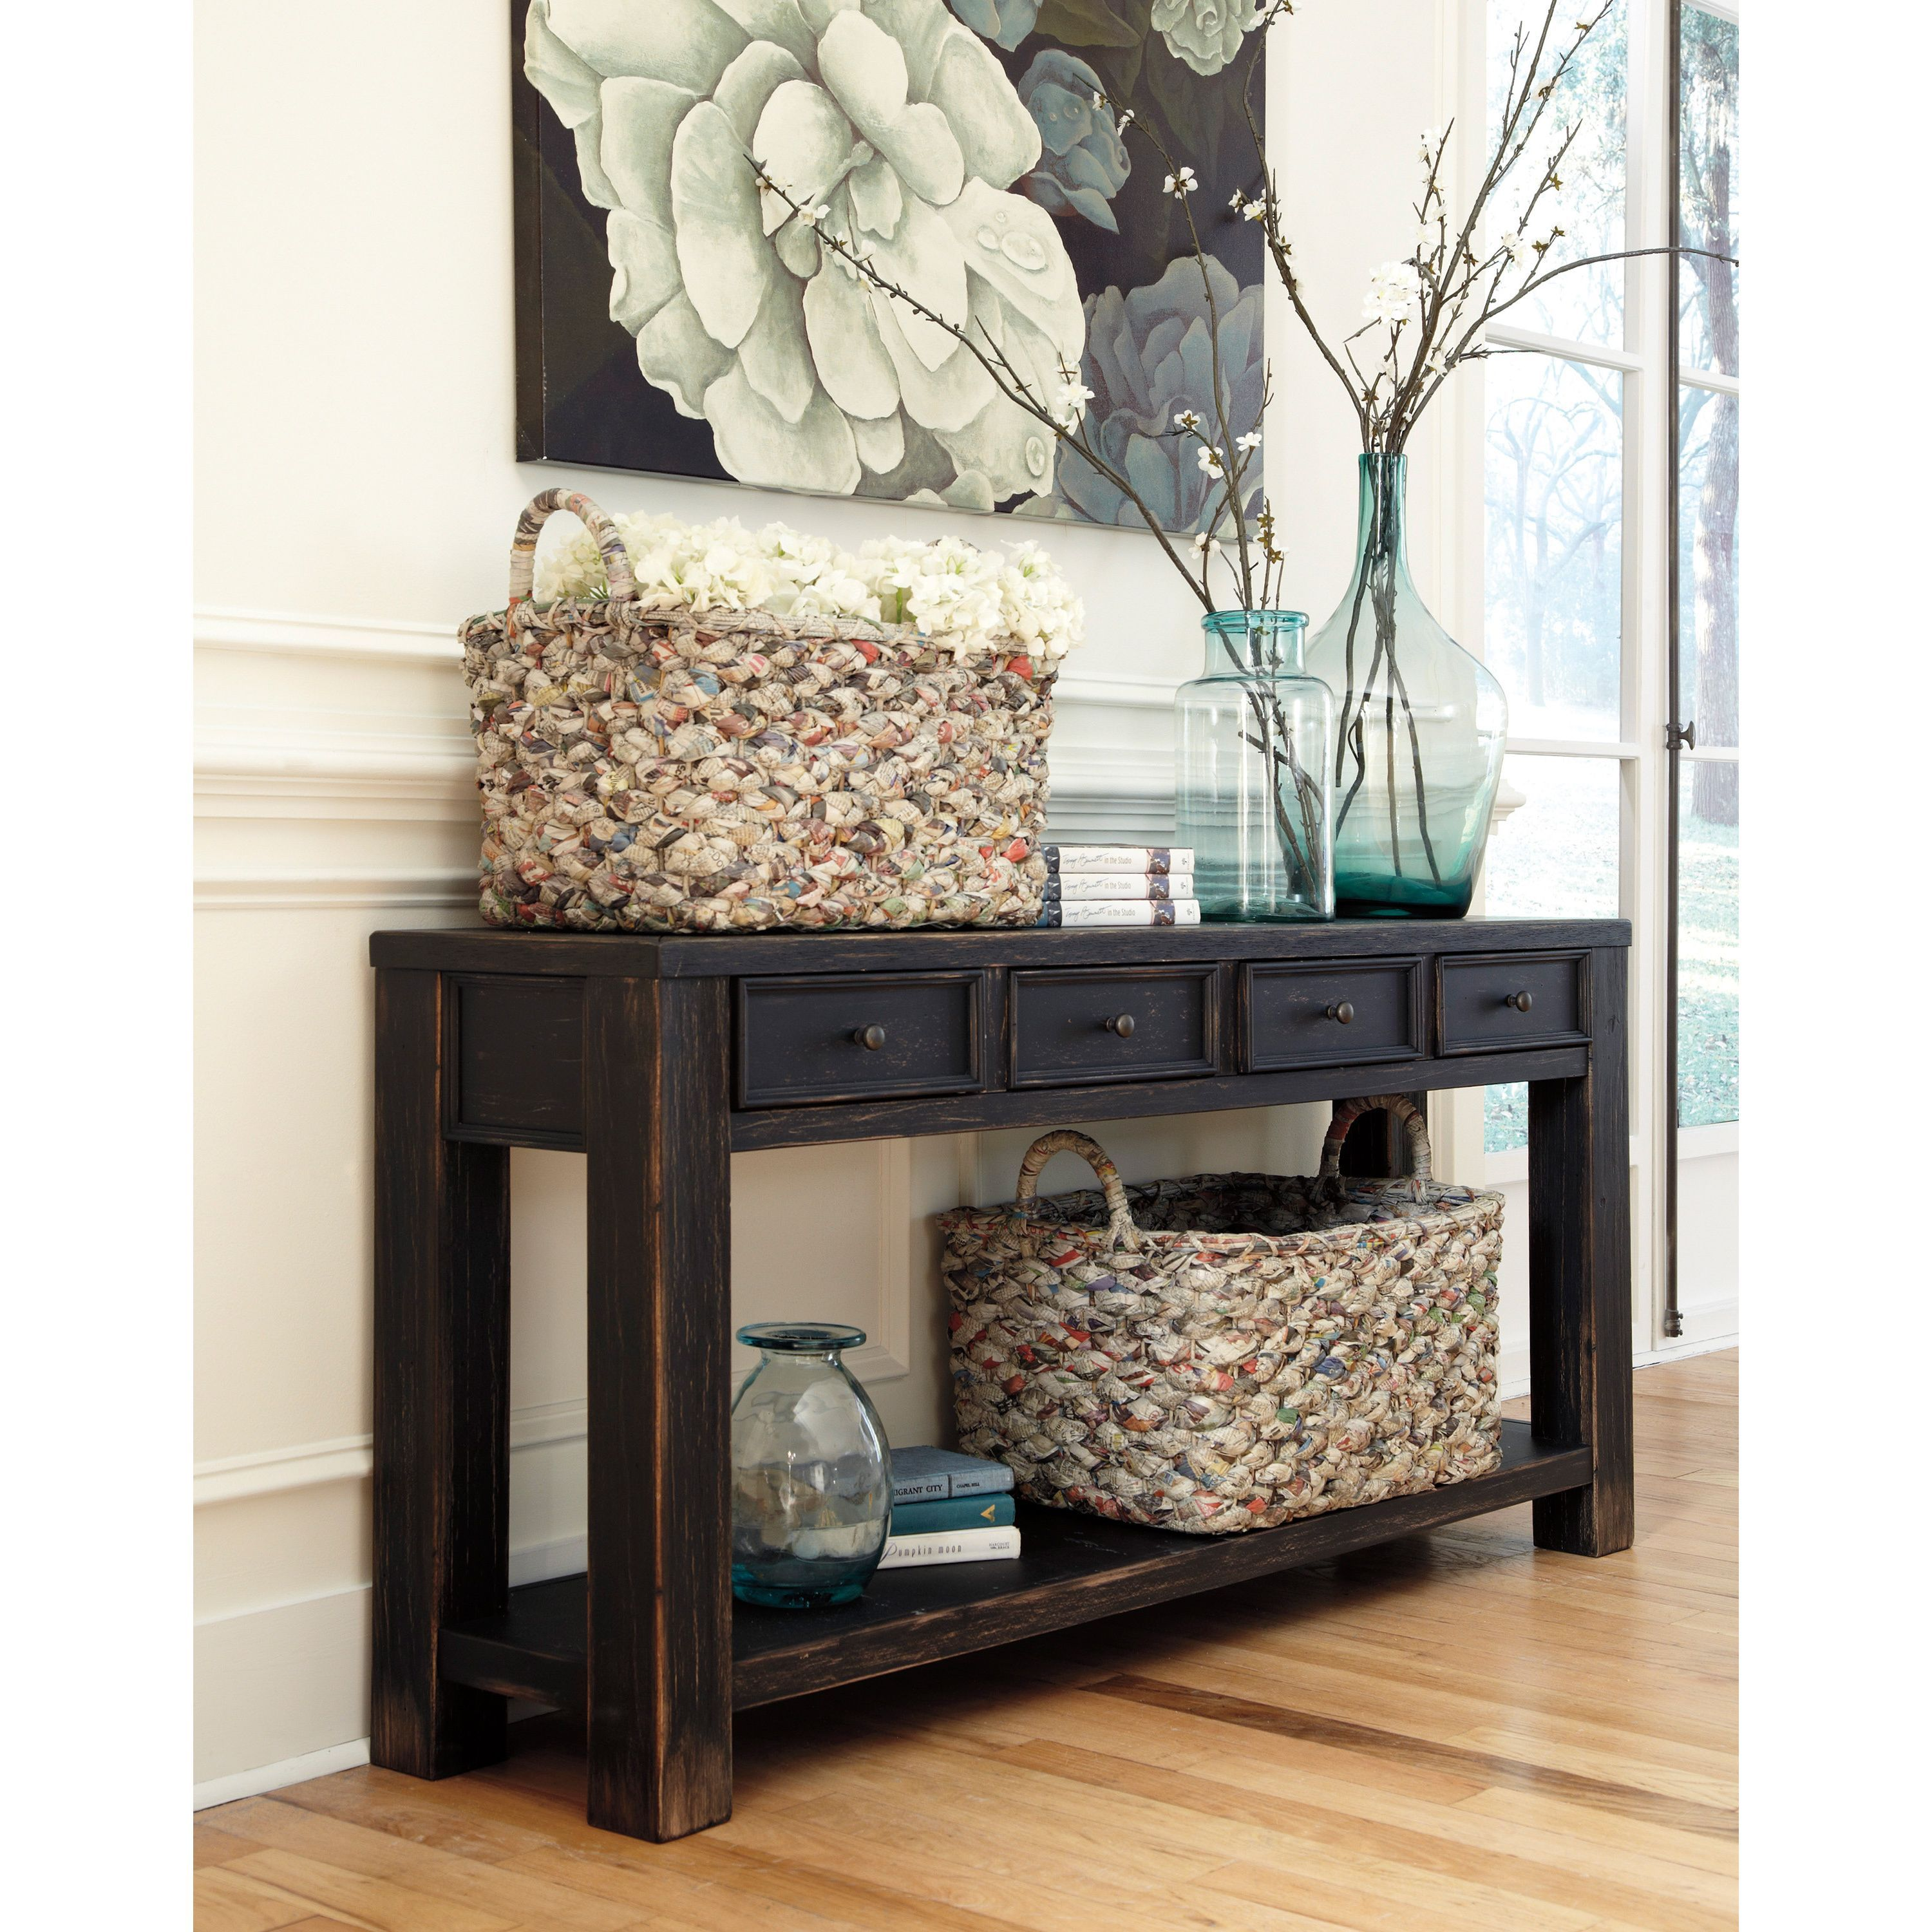 Chic And Vintage, The Gavelston Sofa Table Will Bring Cottage Inspired  Style To Any